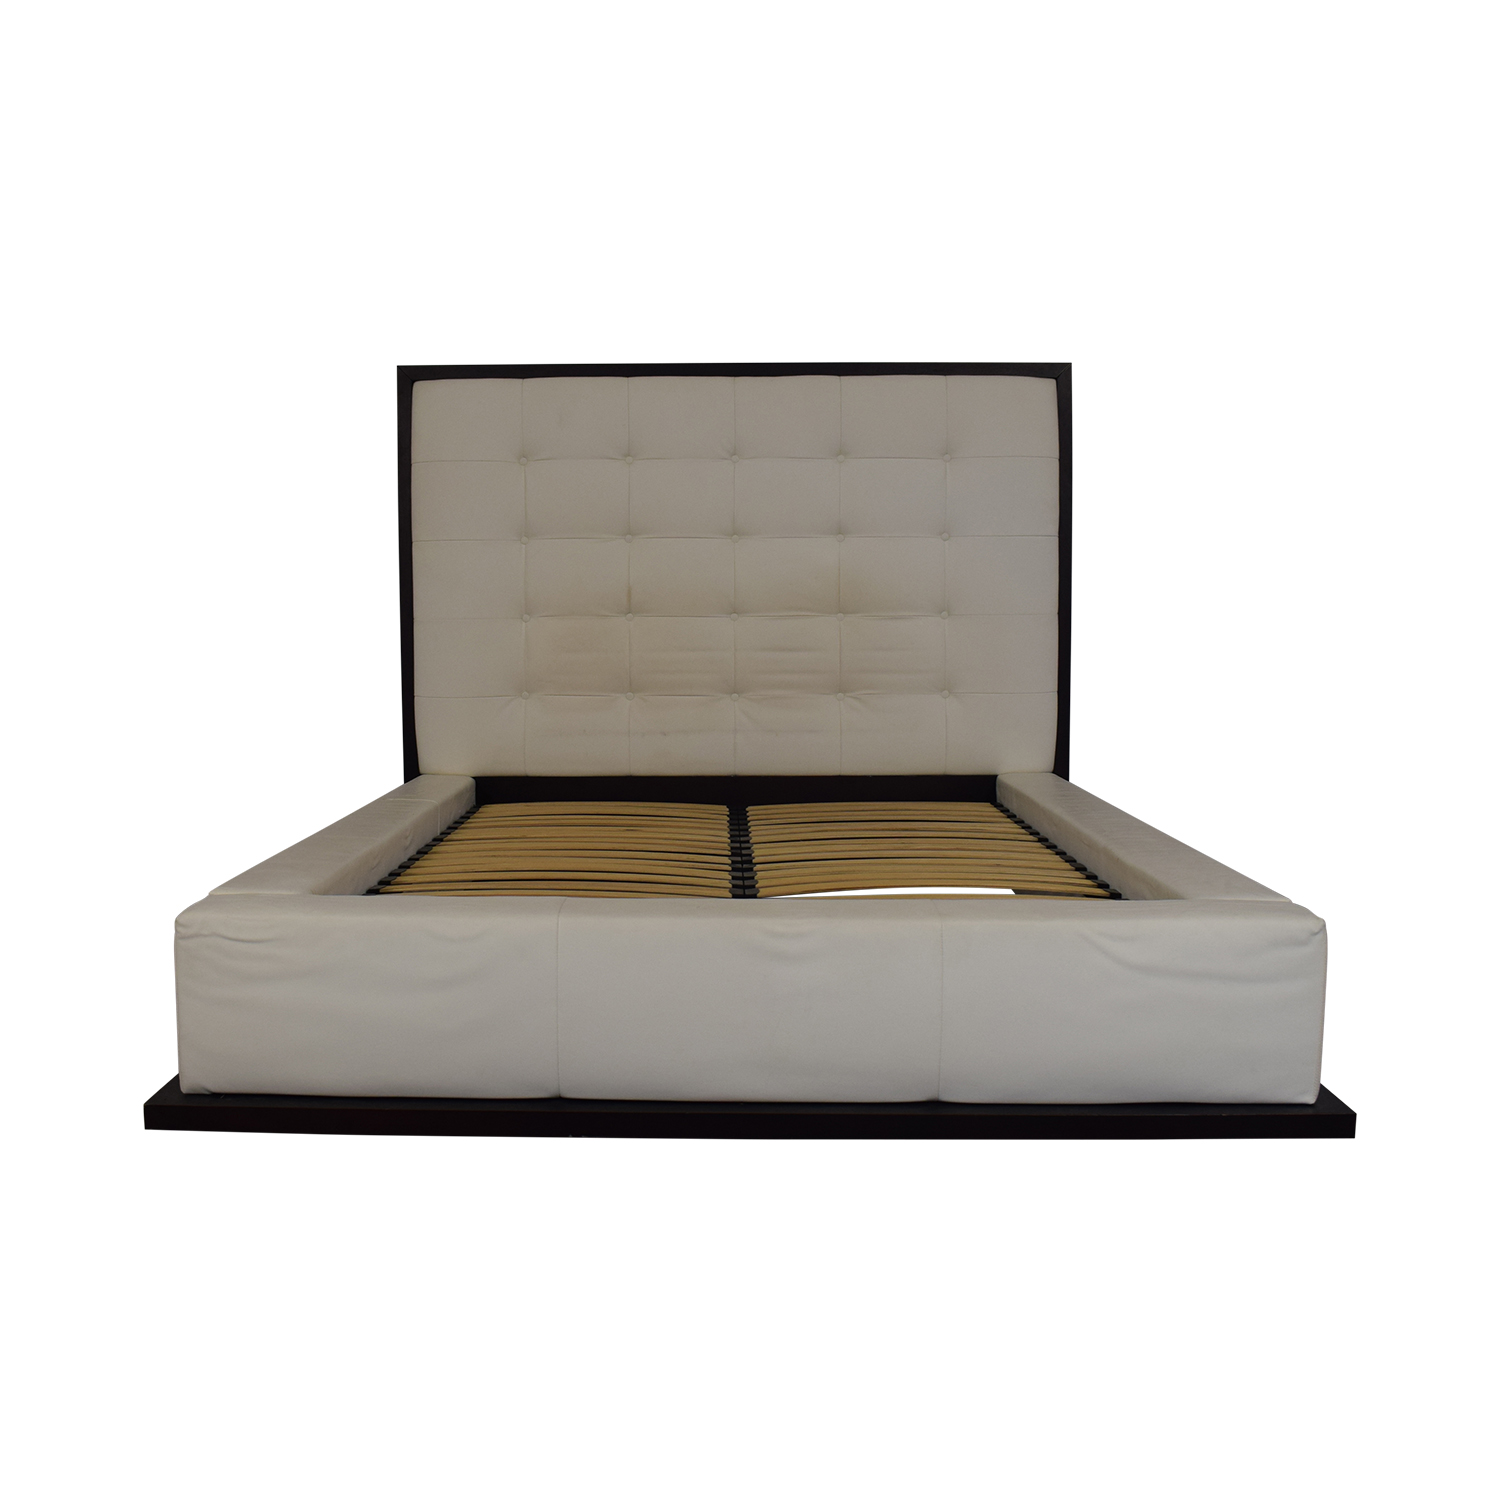 Modloft Ludlow White Tufted Upholstered Queen Bed Frame / Beds